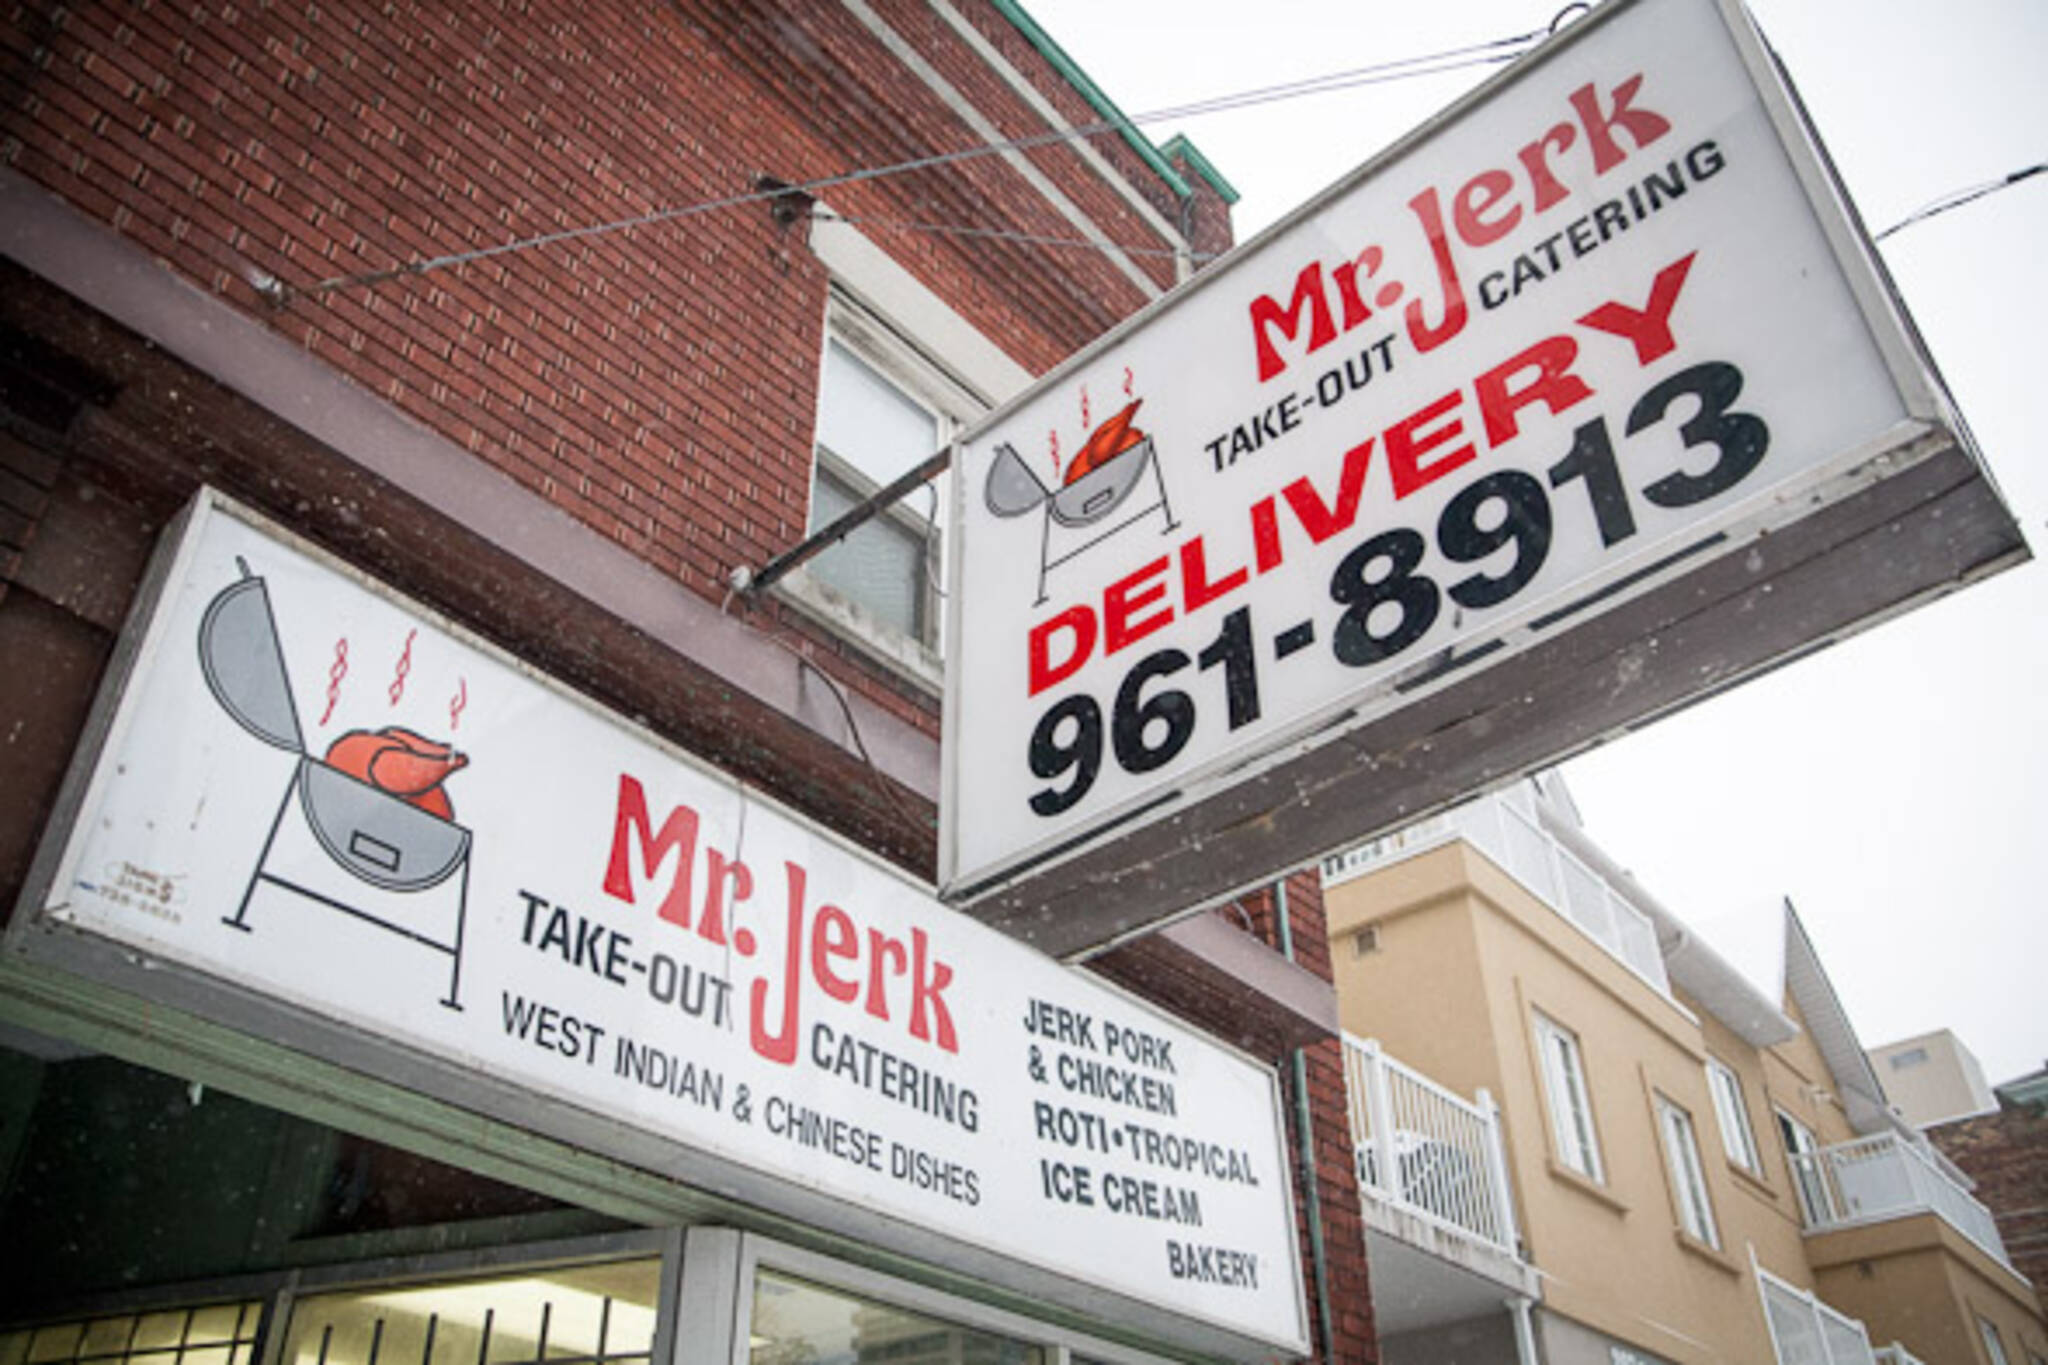 st jamestown mr jerk toronto